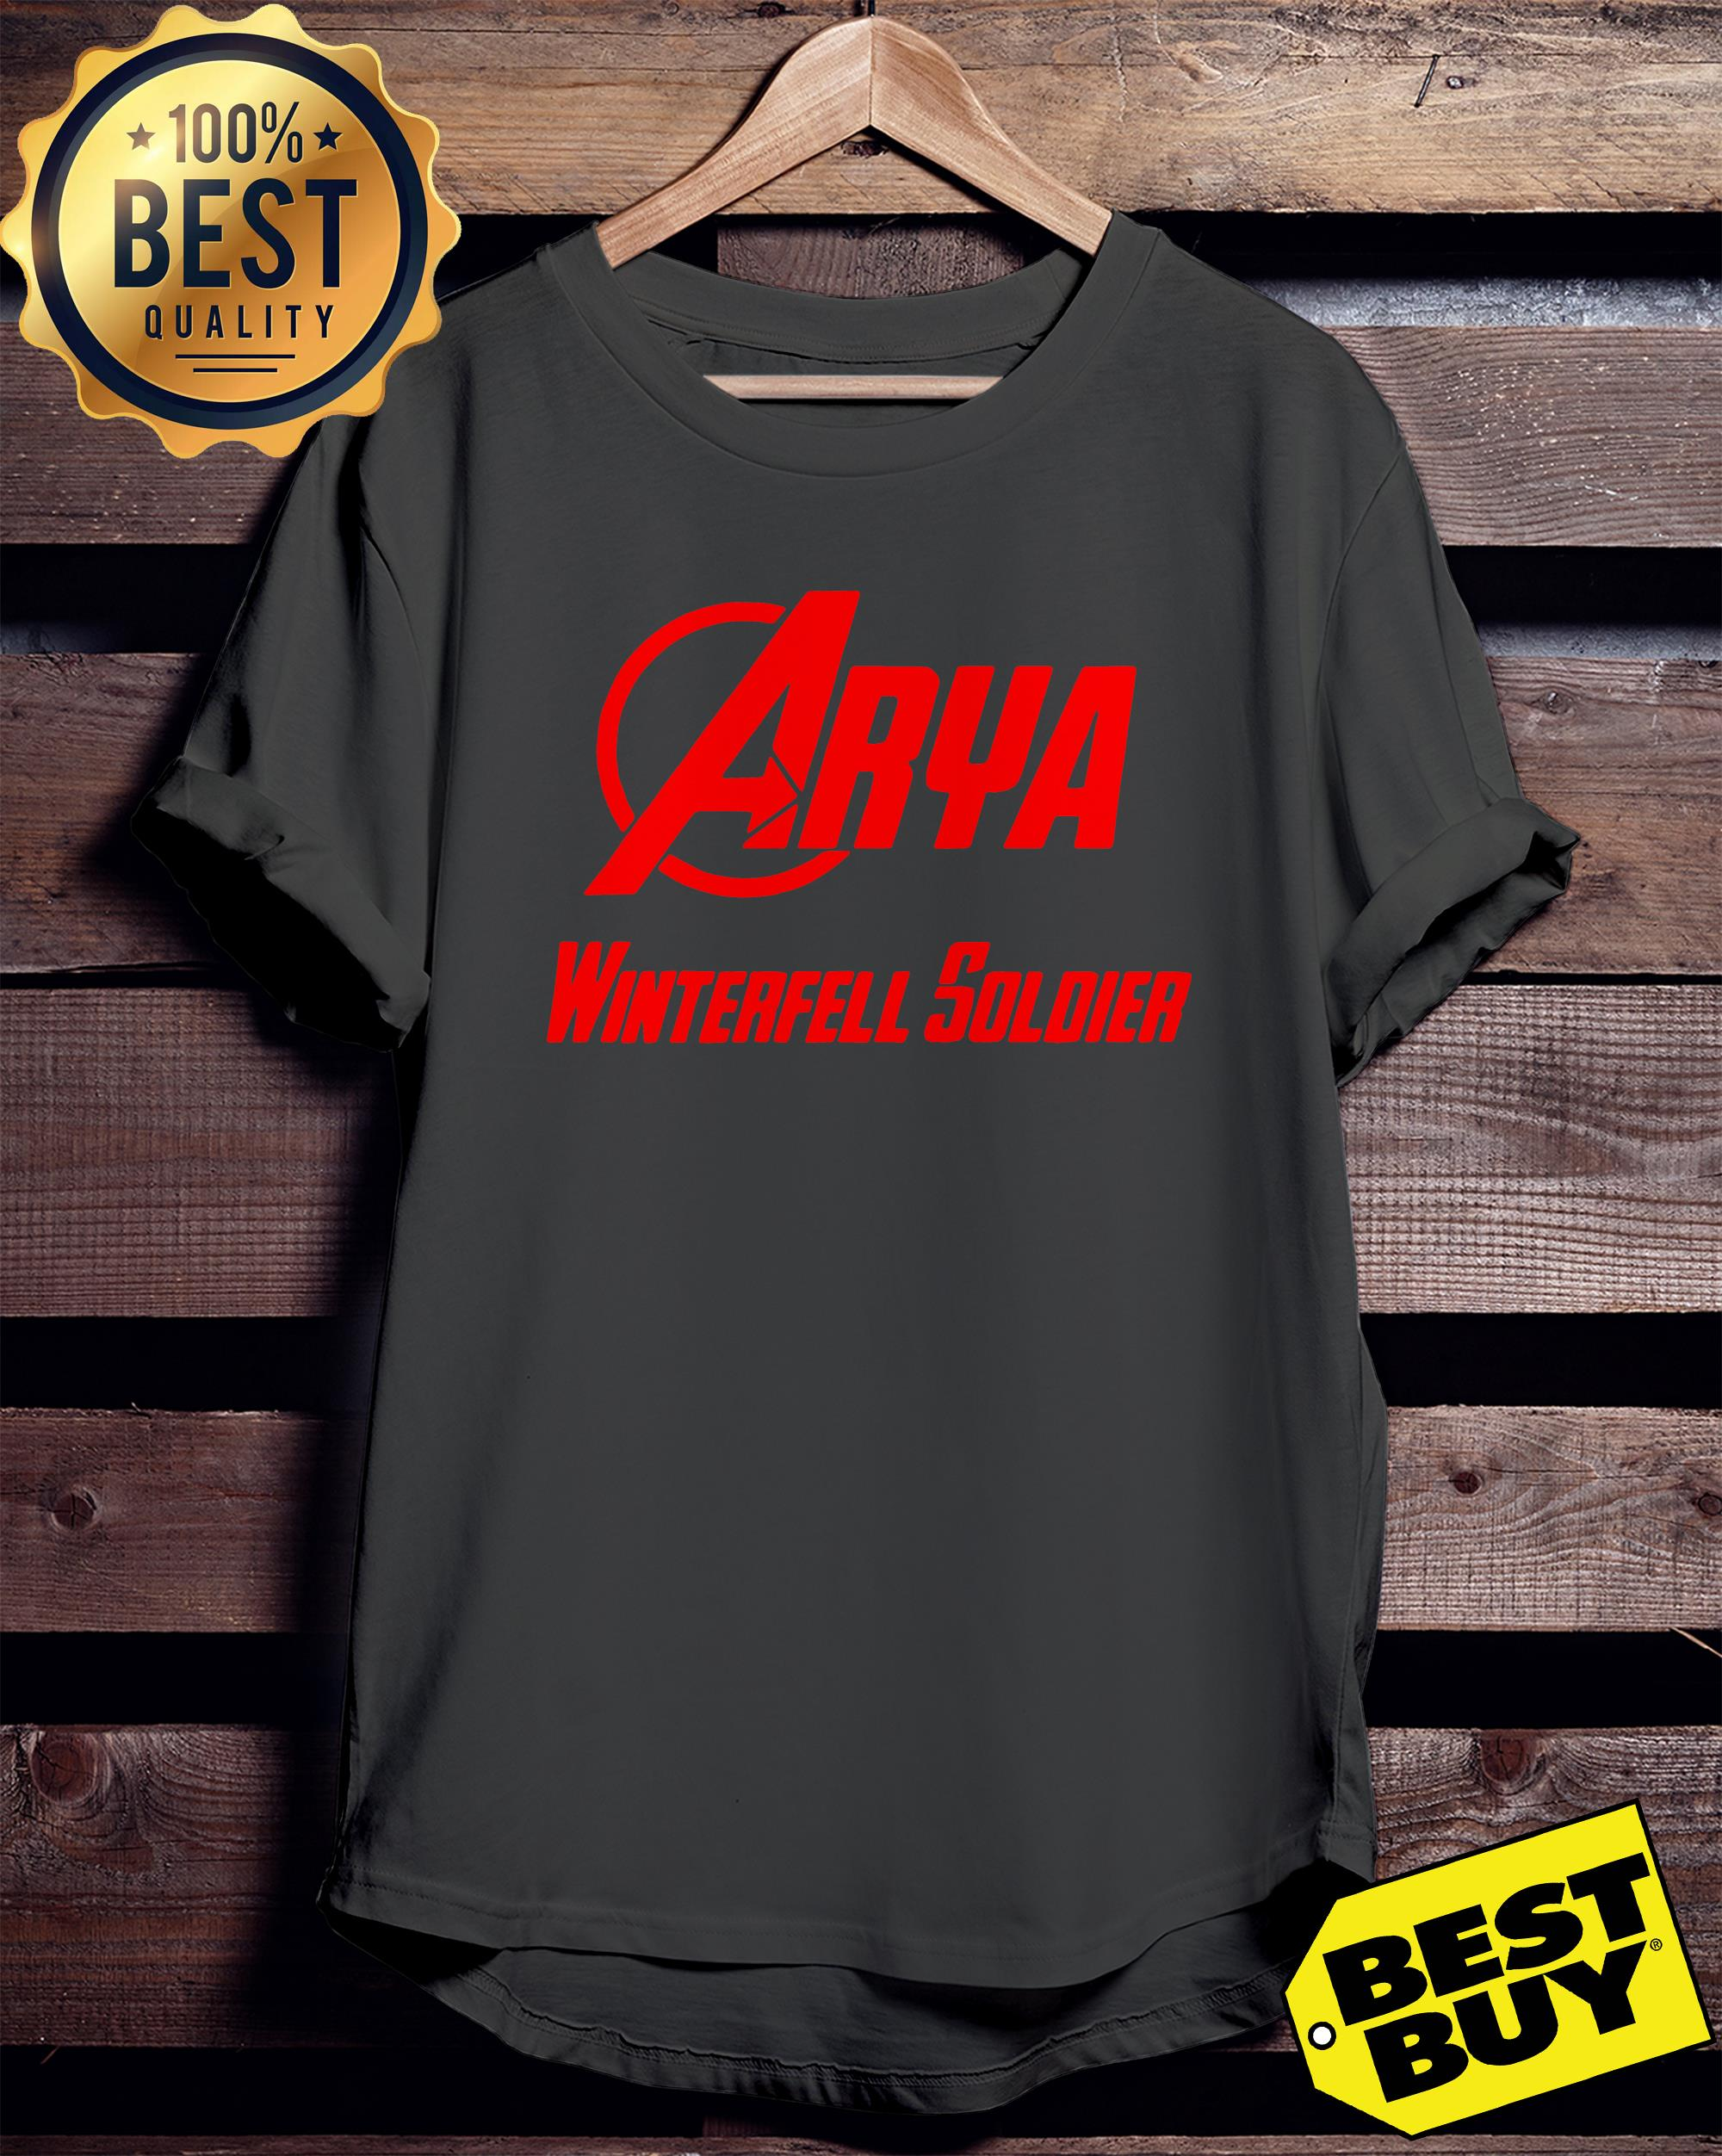 Arya Stark Winterfell Soldier Game of Thrones ladies tee